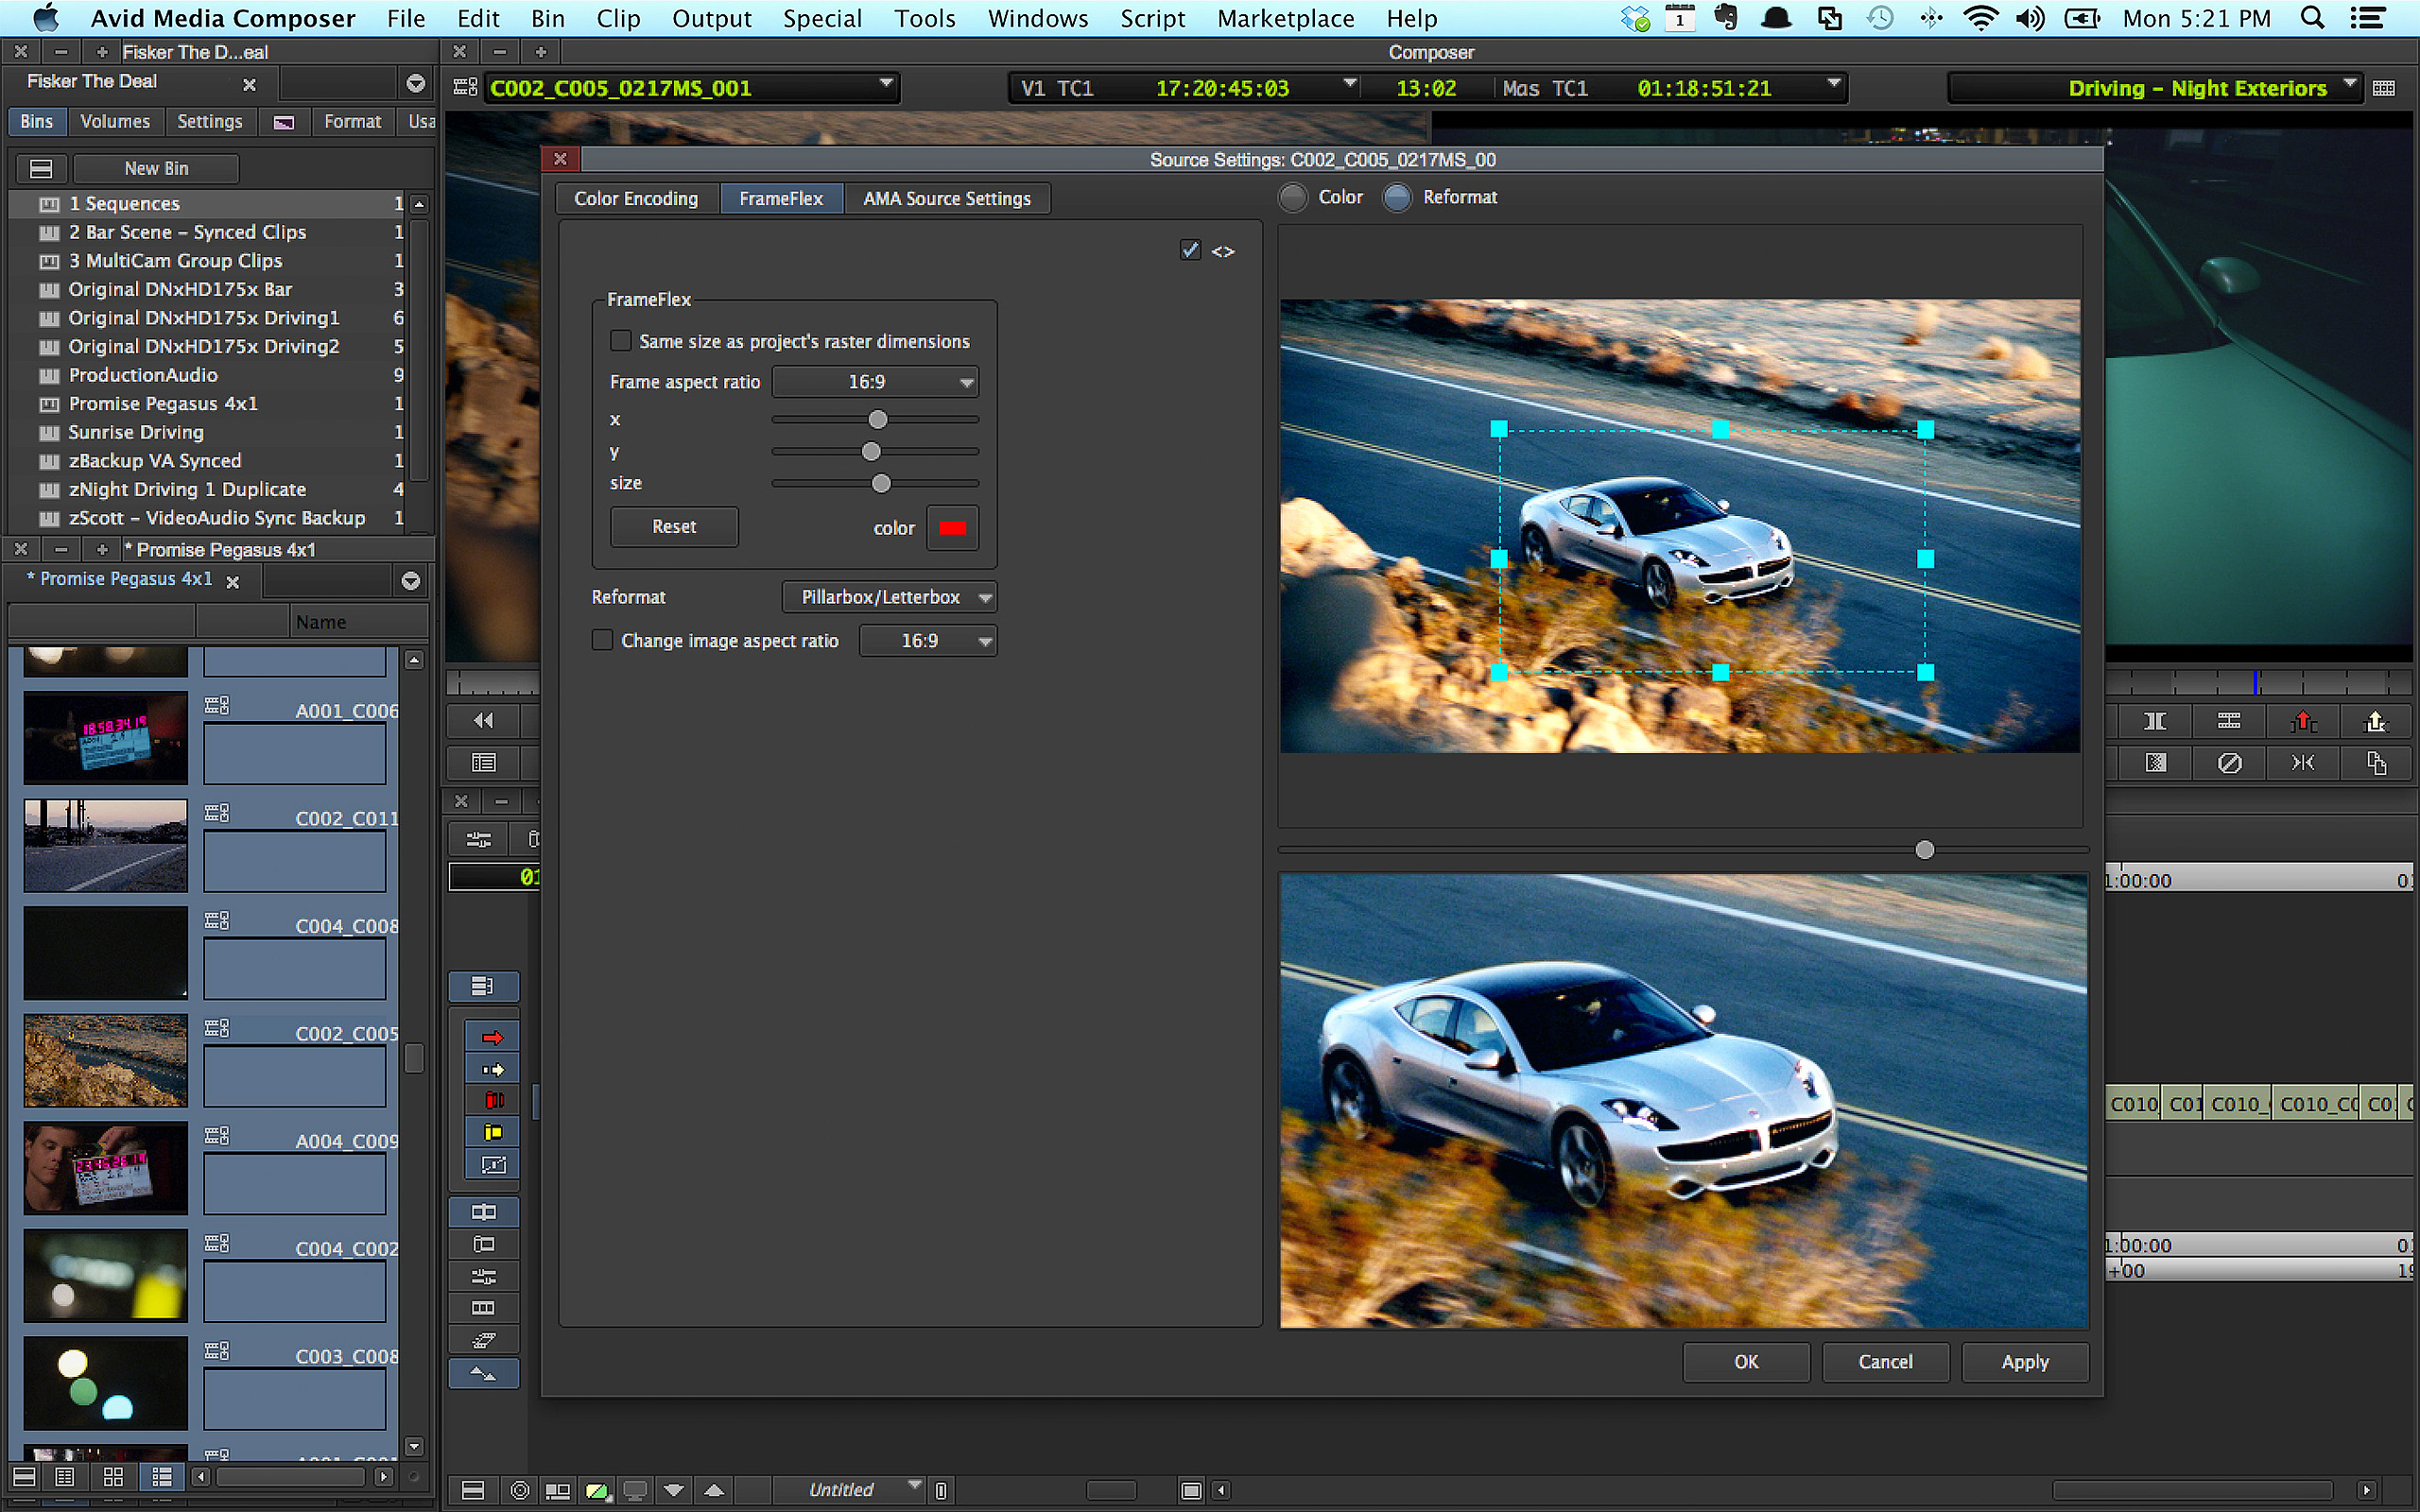 Avid Media Composer 7 New Features